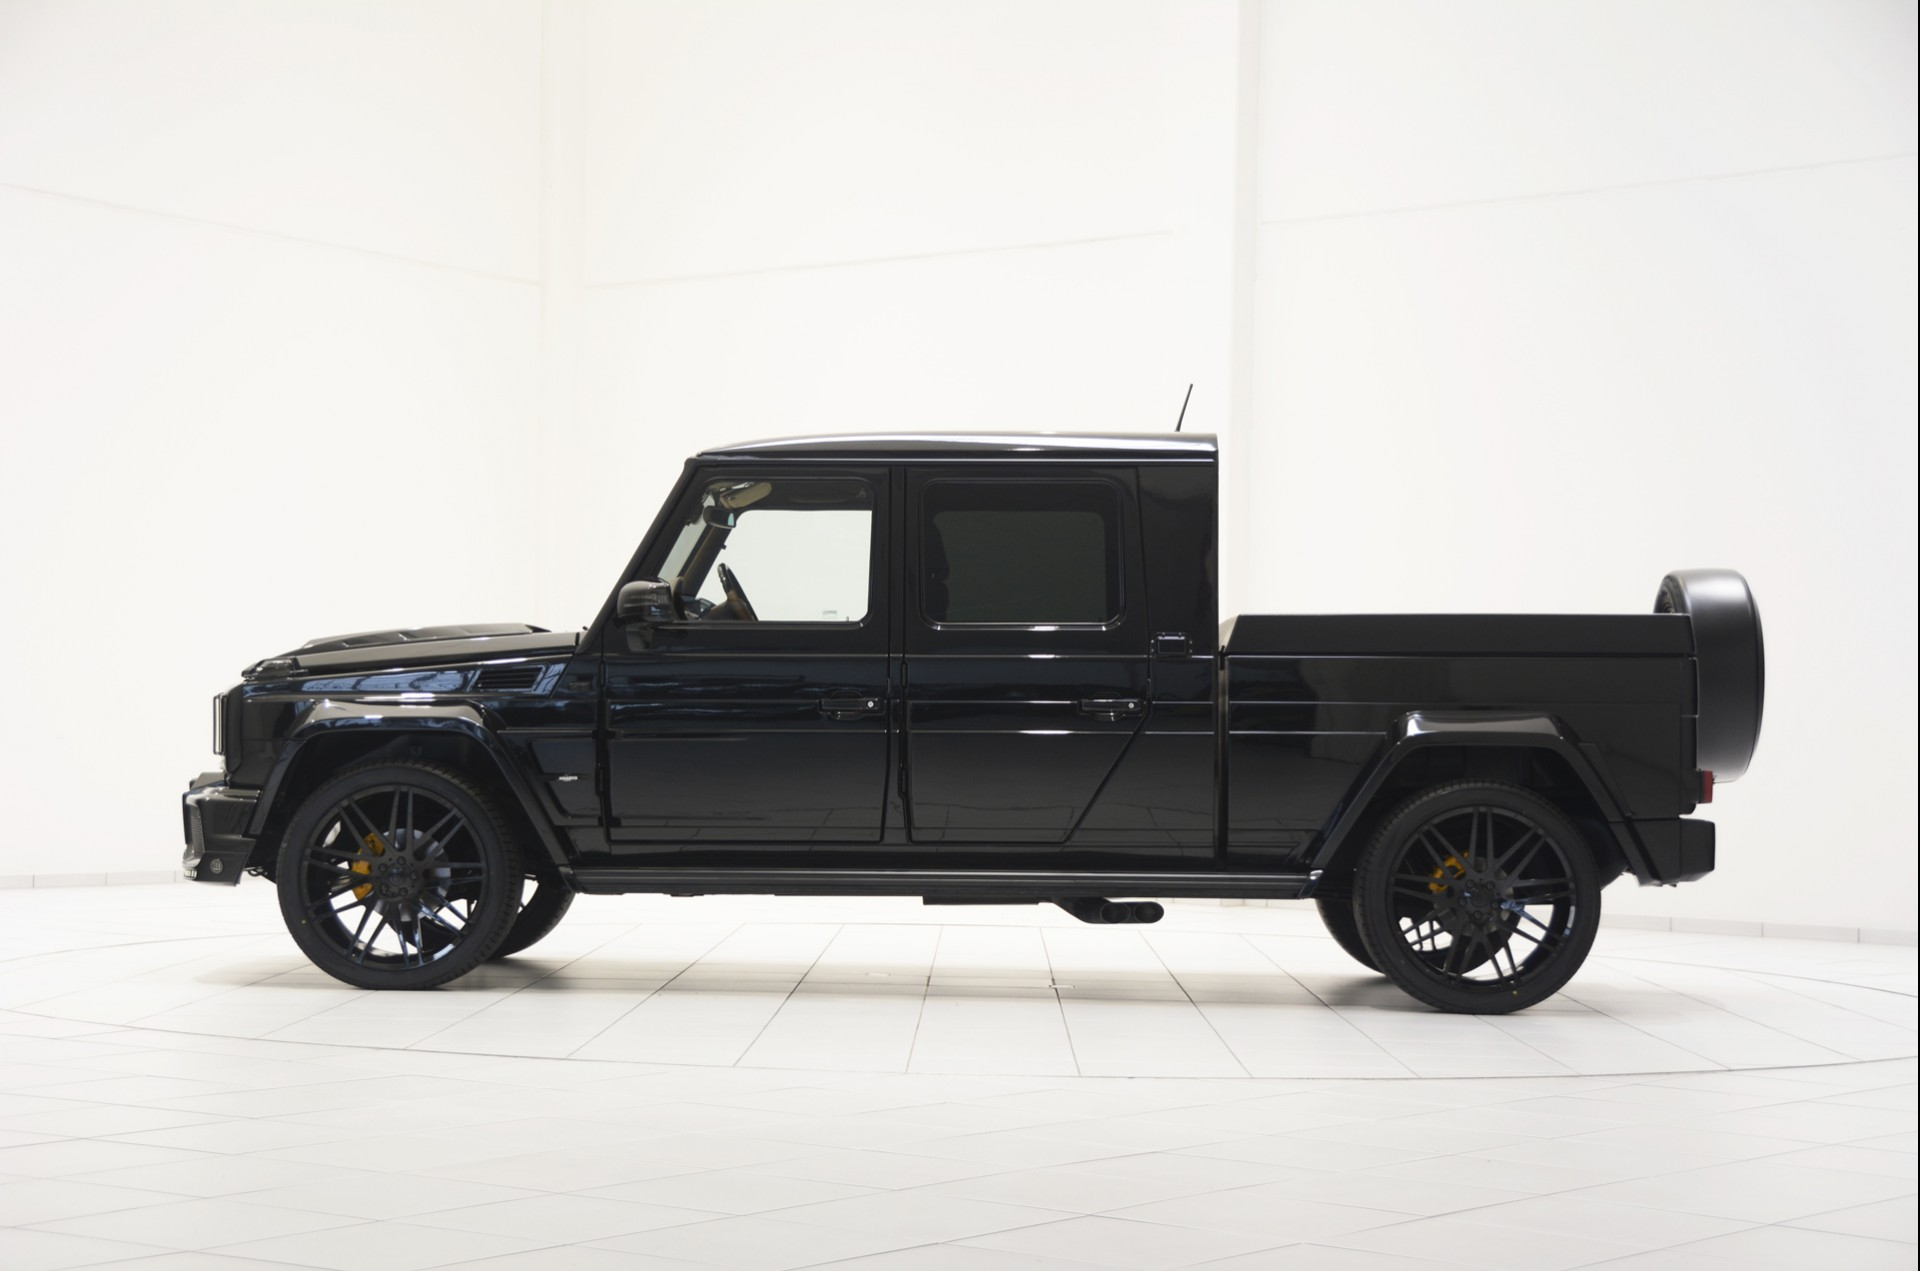 mercedes g wagon truck 2017. brabus g500 xxl pickup truck is very large, wide and cool mercedes g wagon 2017 -